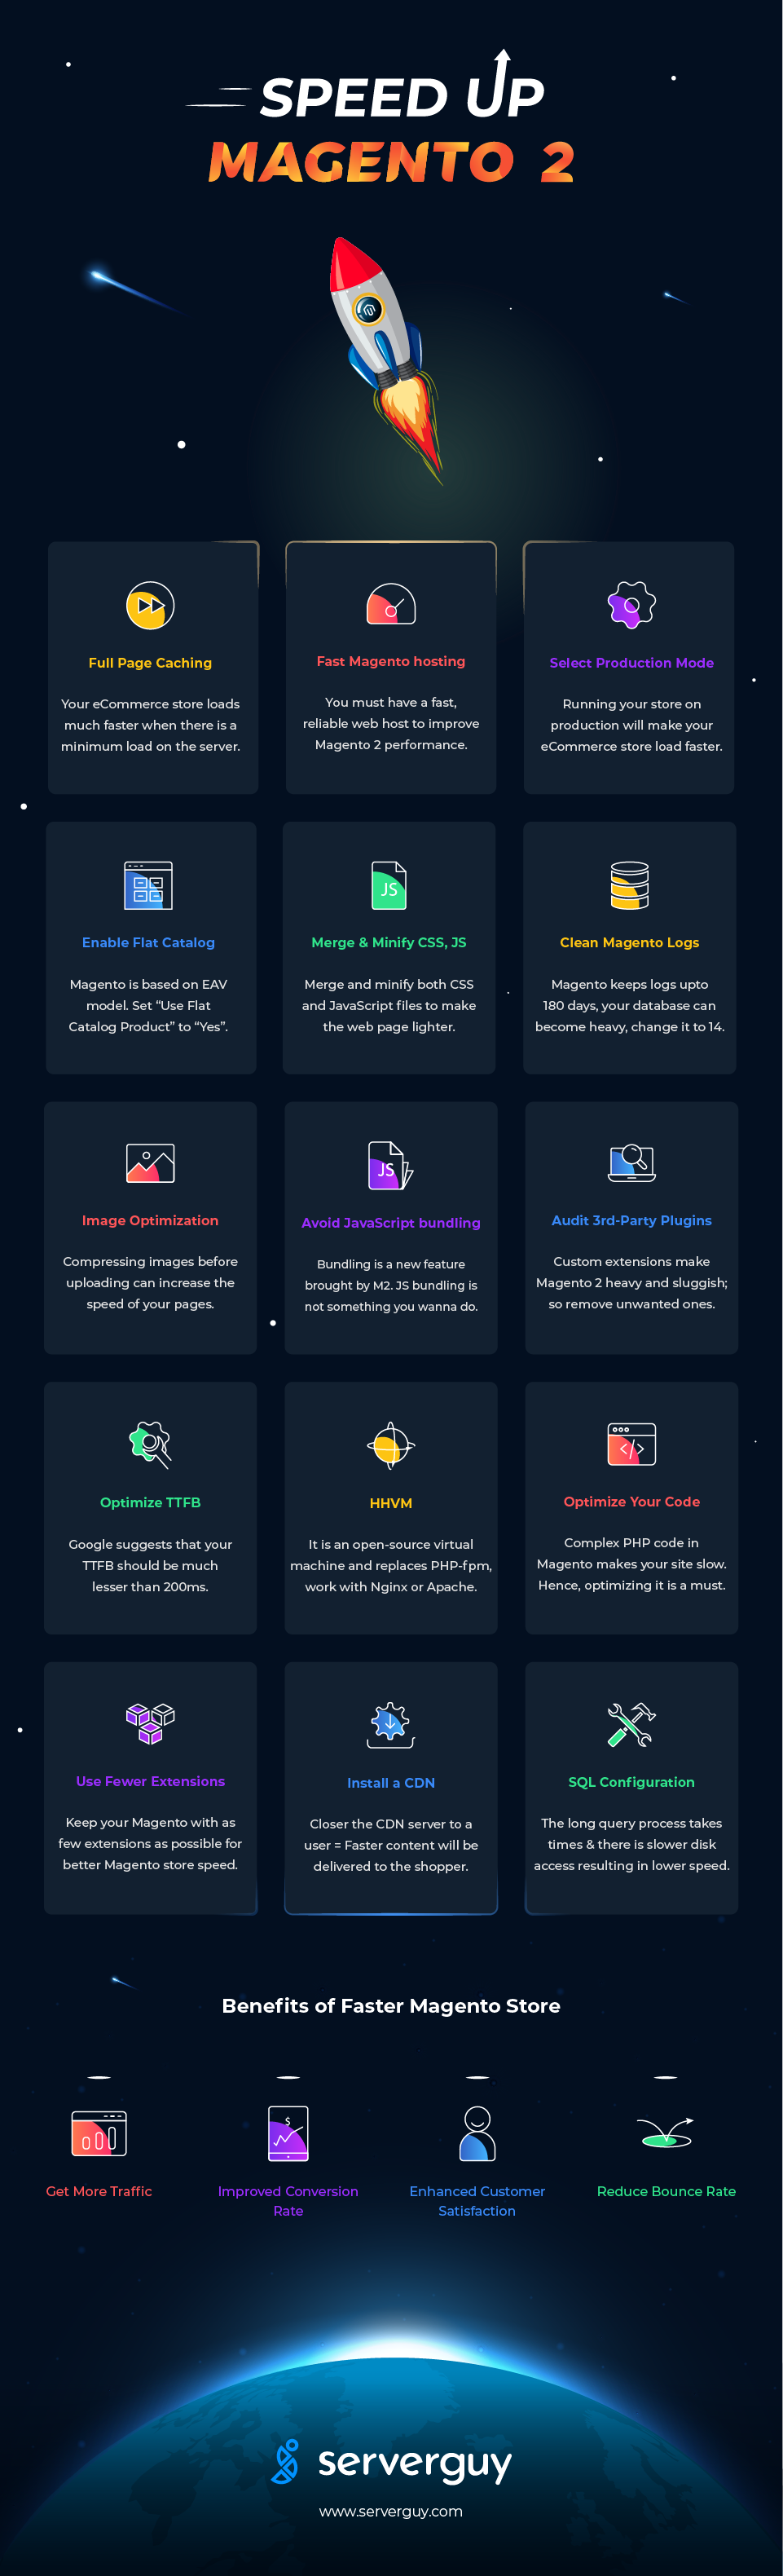 tips to speed up magento 2 infographic